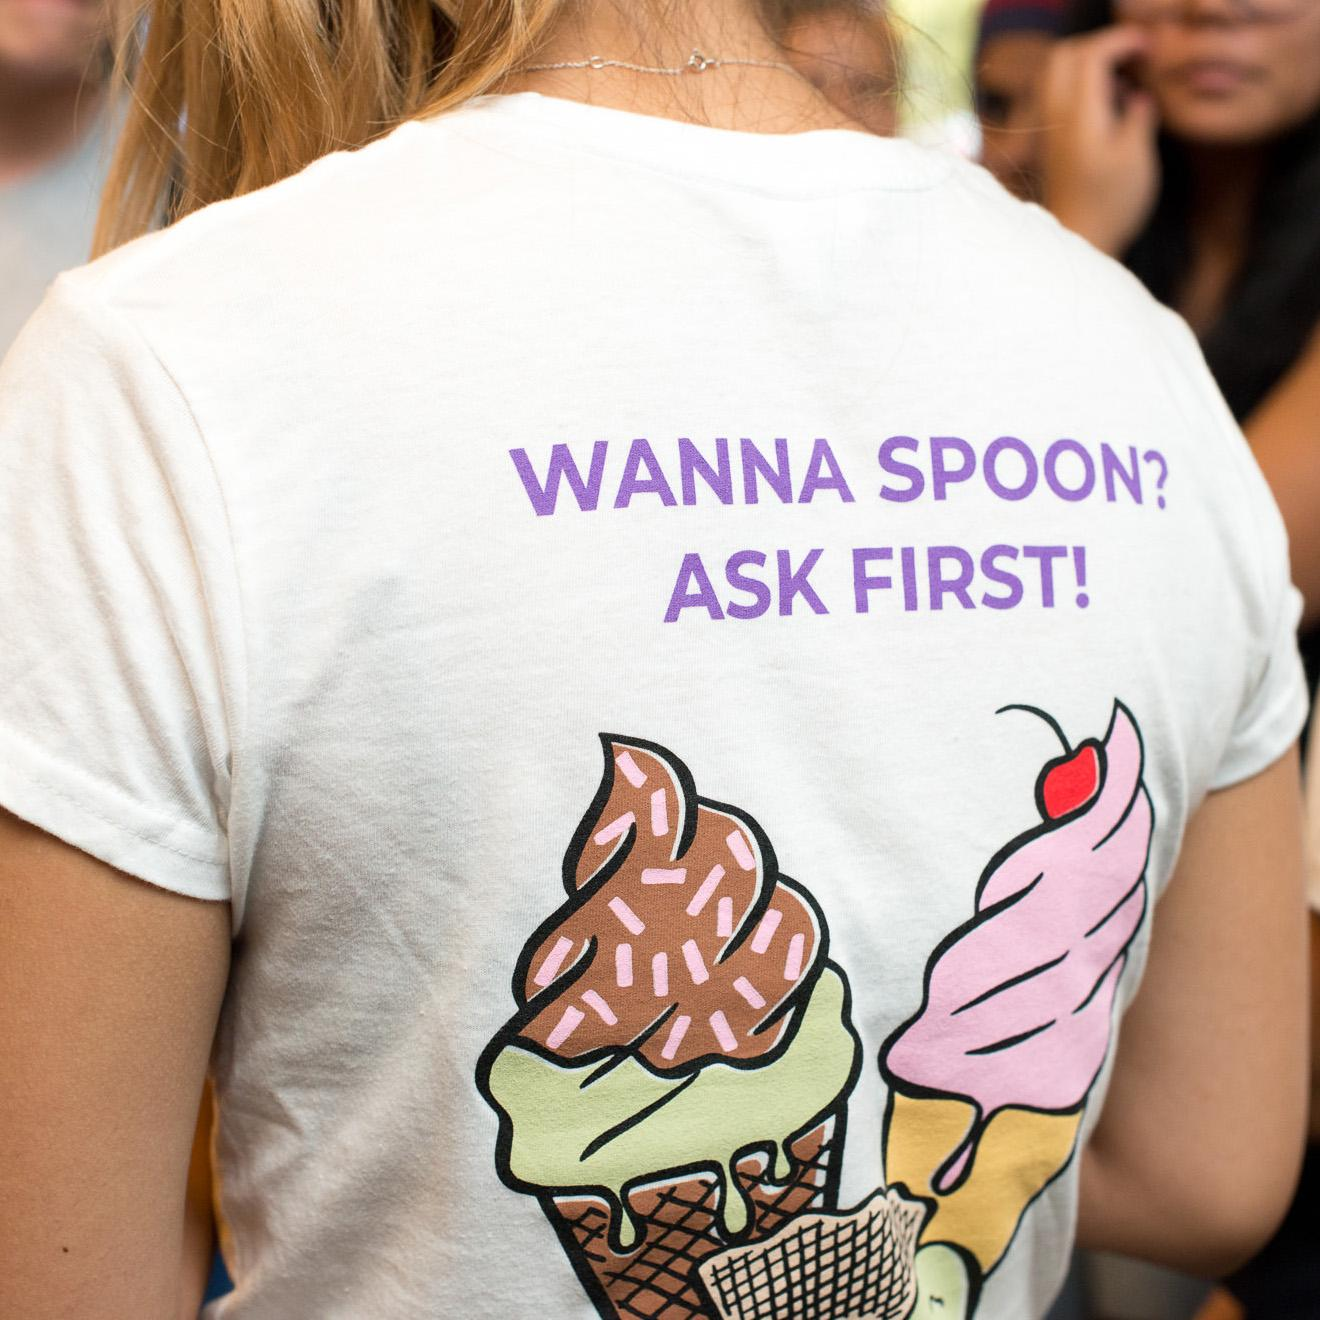 Icecream line drawing t-shirt. Text: Wanna Spoon? Ask first!